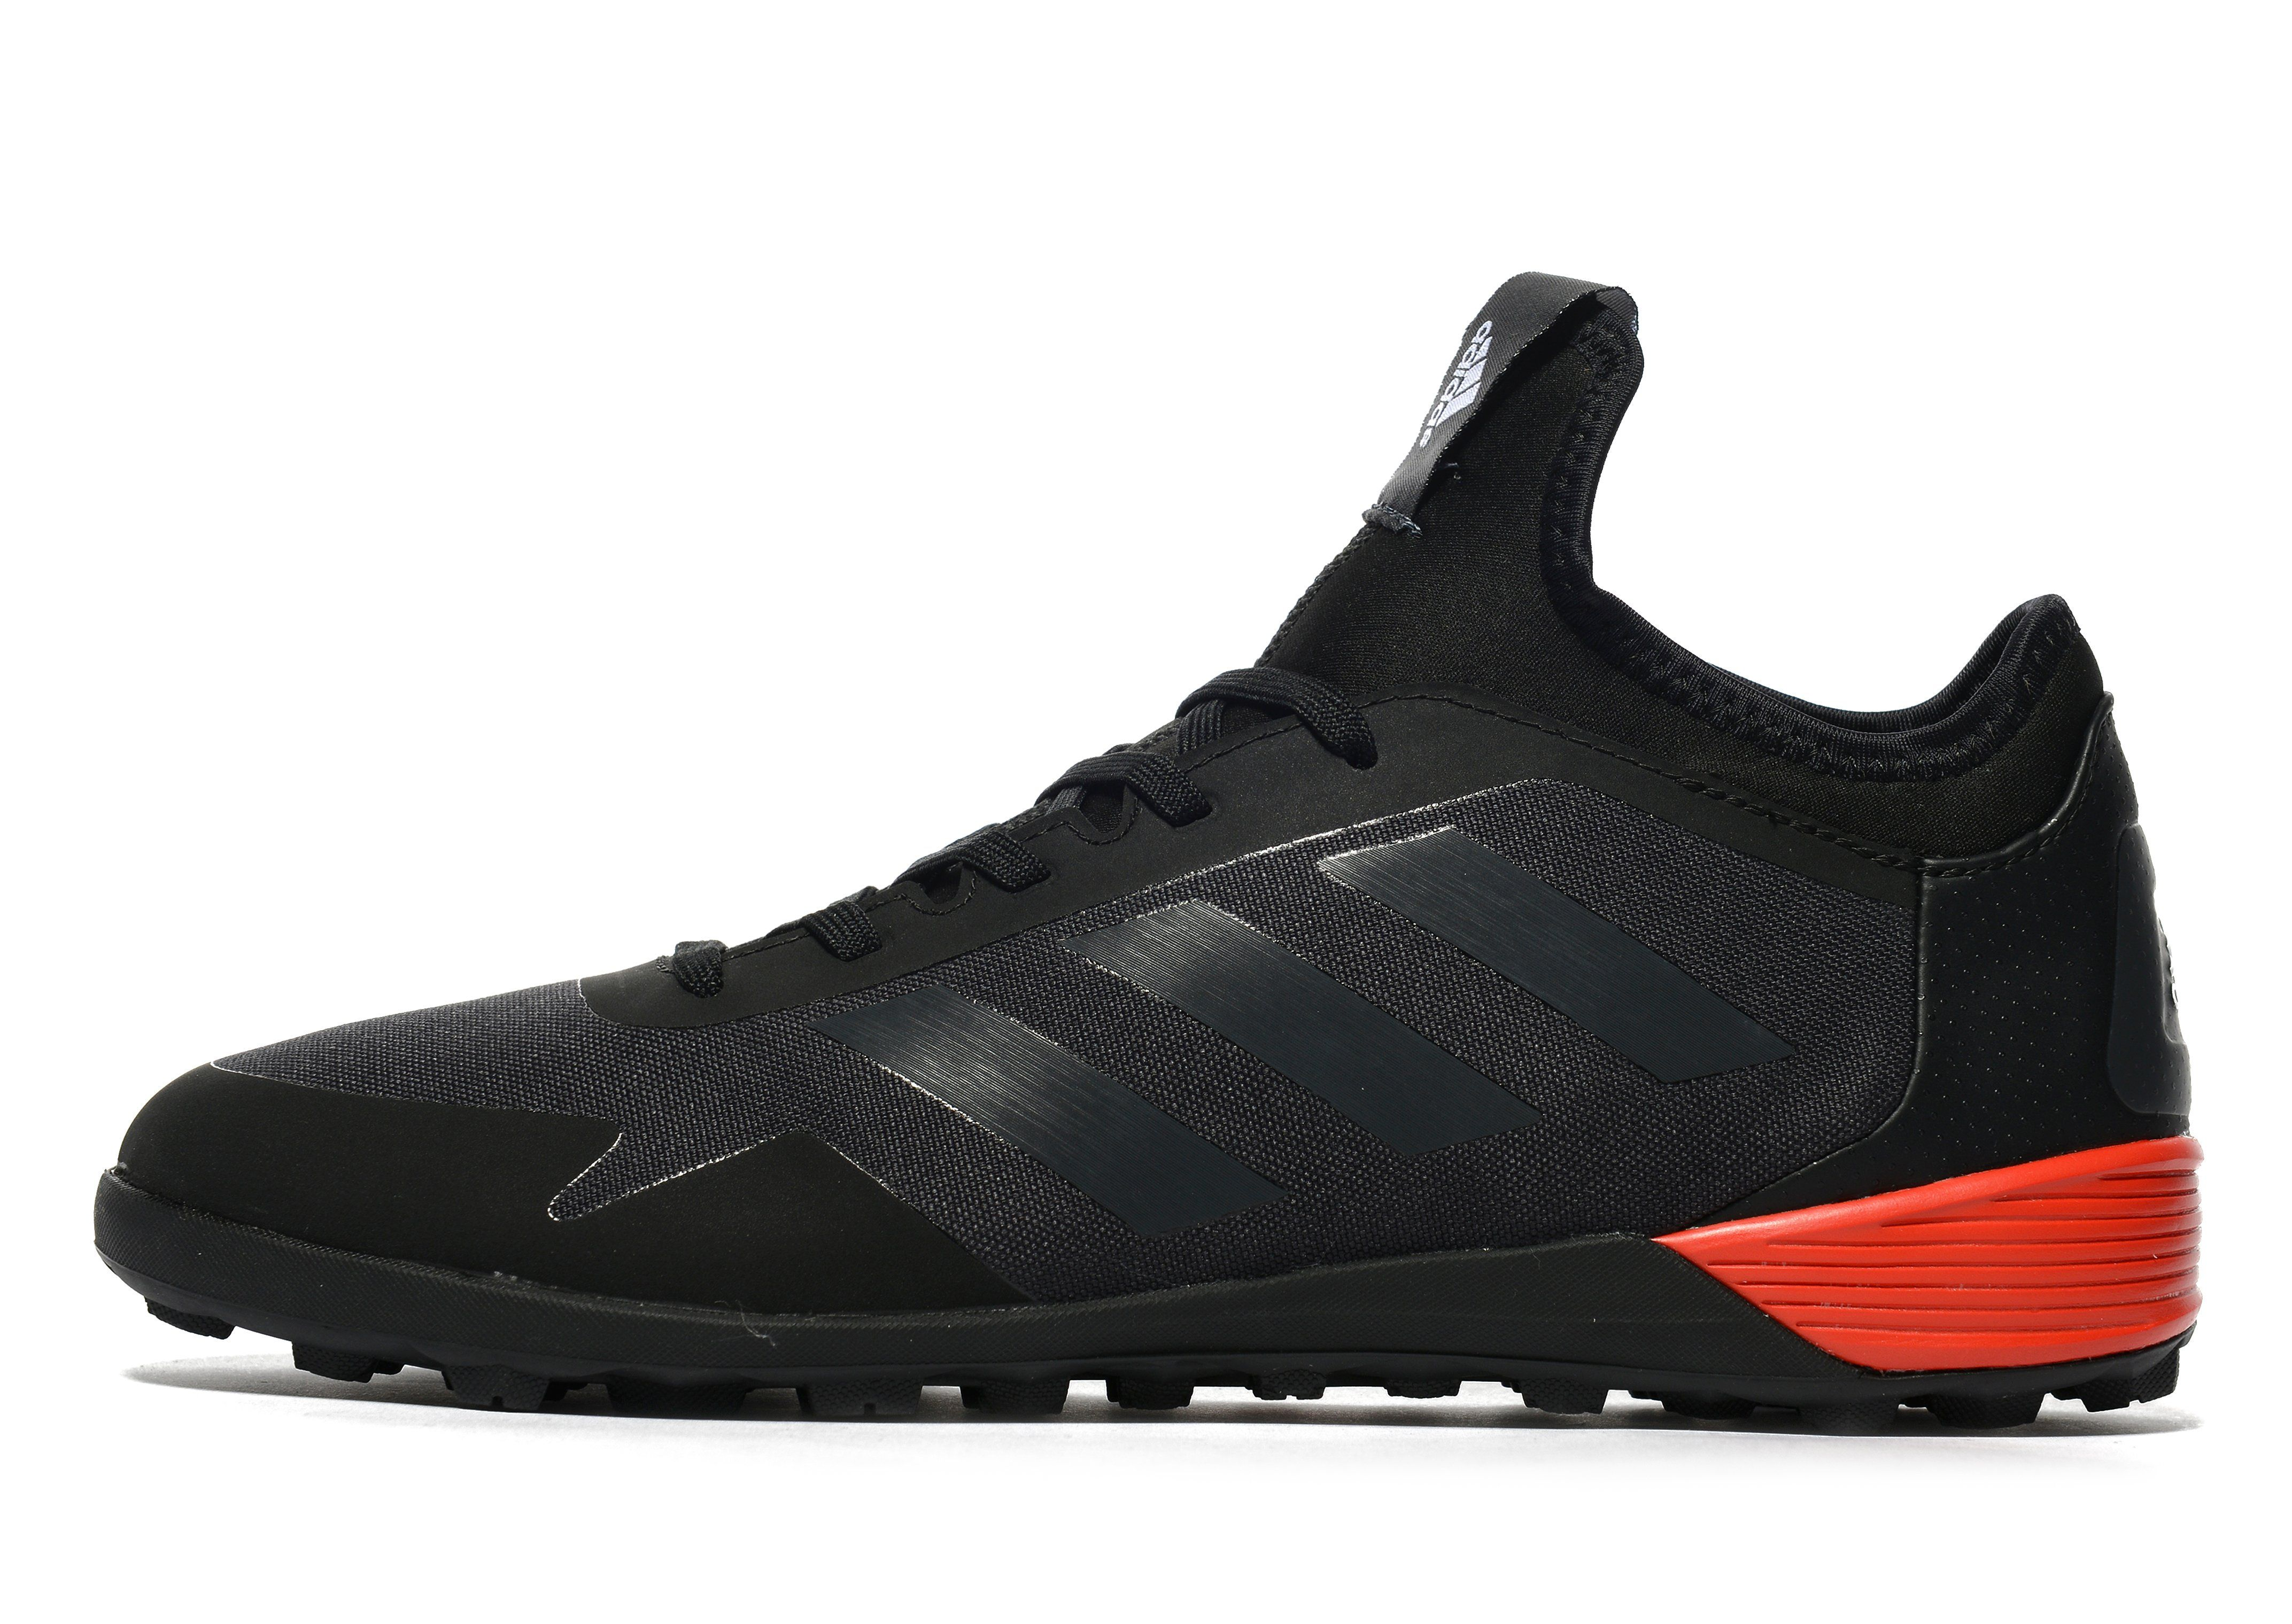 76a88f04697 50%OFF adidas Red Limit ACE Tango 17.2 Turf